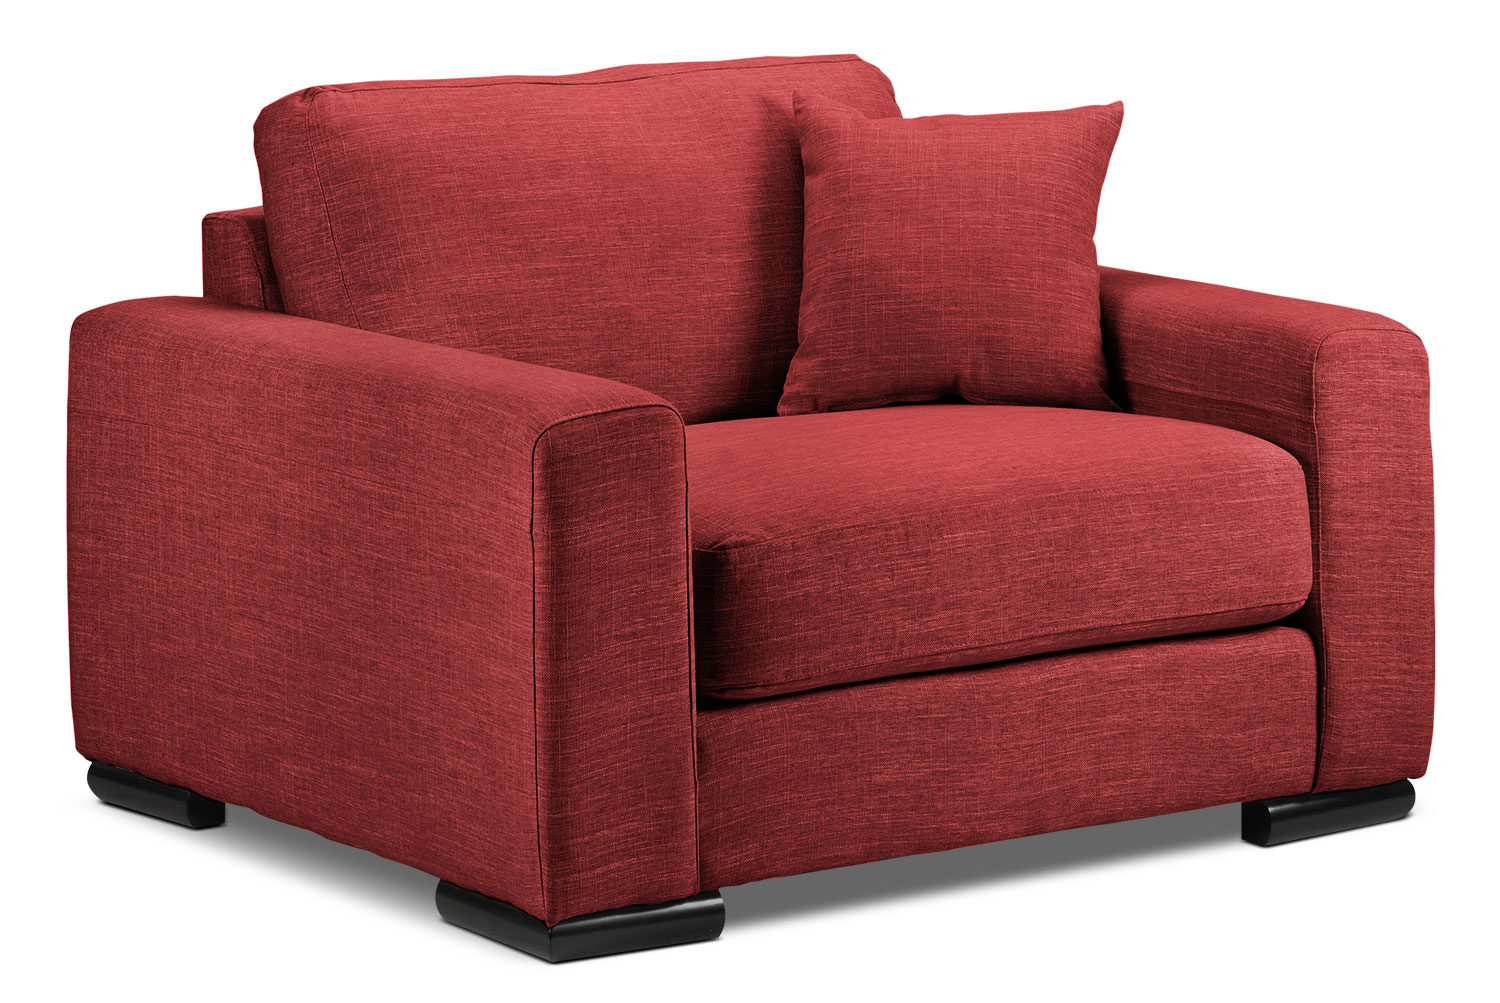 Living Room Furniture - Precious Chair and a Half - Red